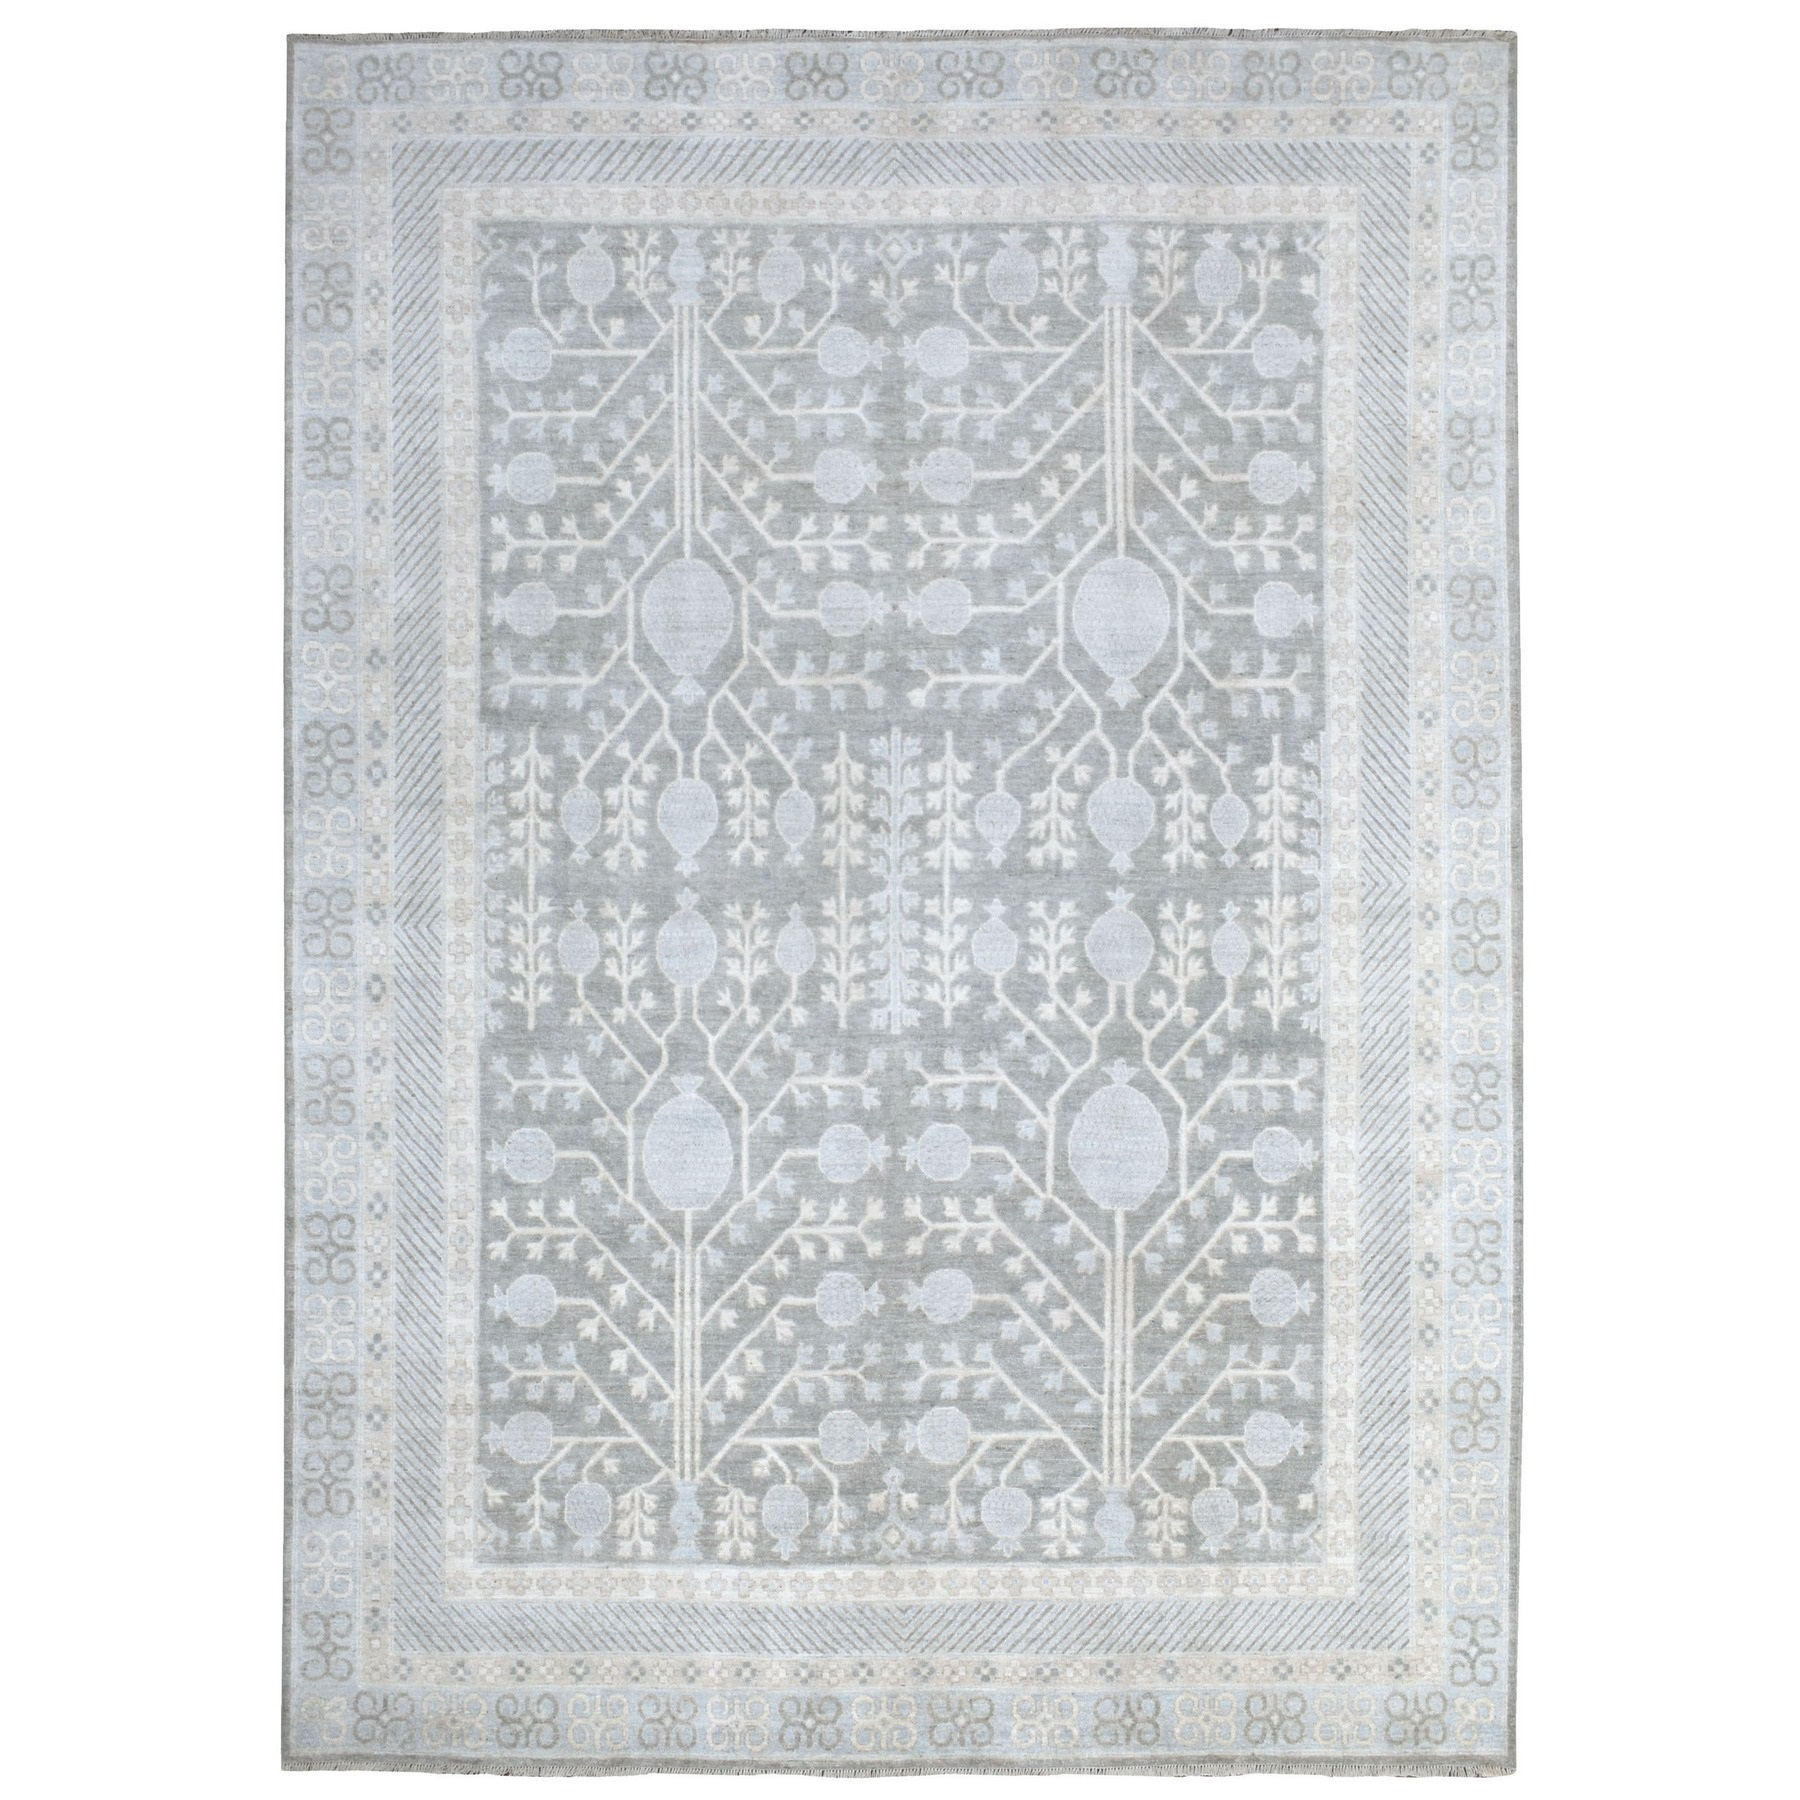 Oushak And Peshawar Rugs LUV609138